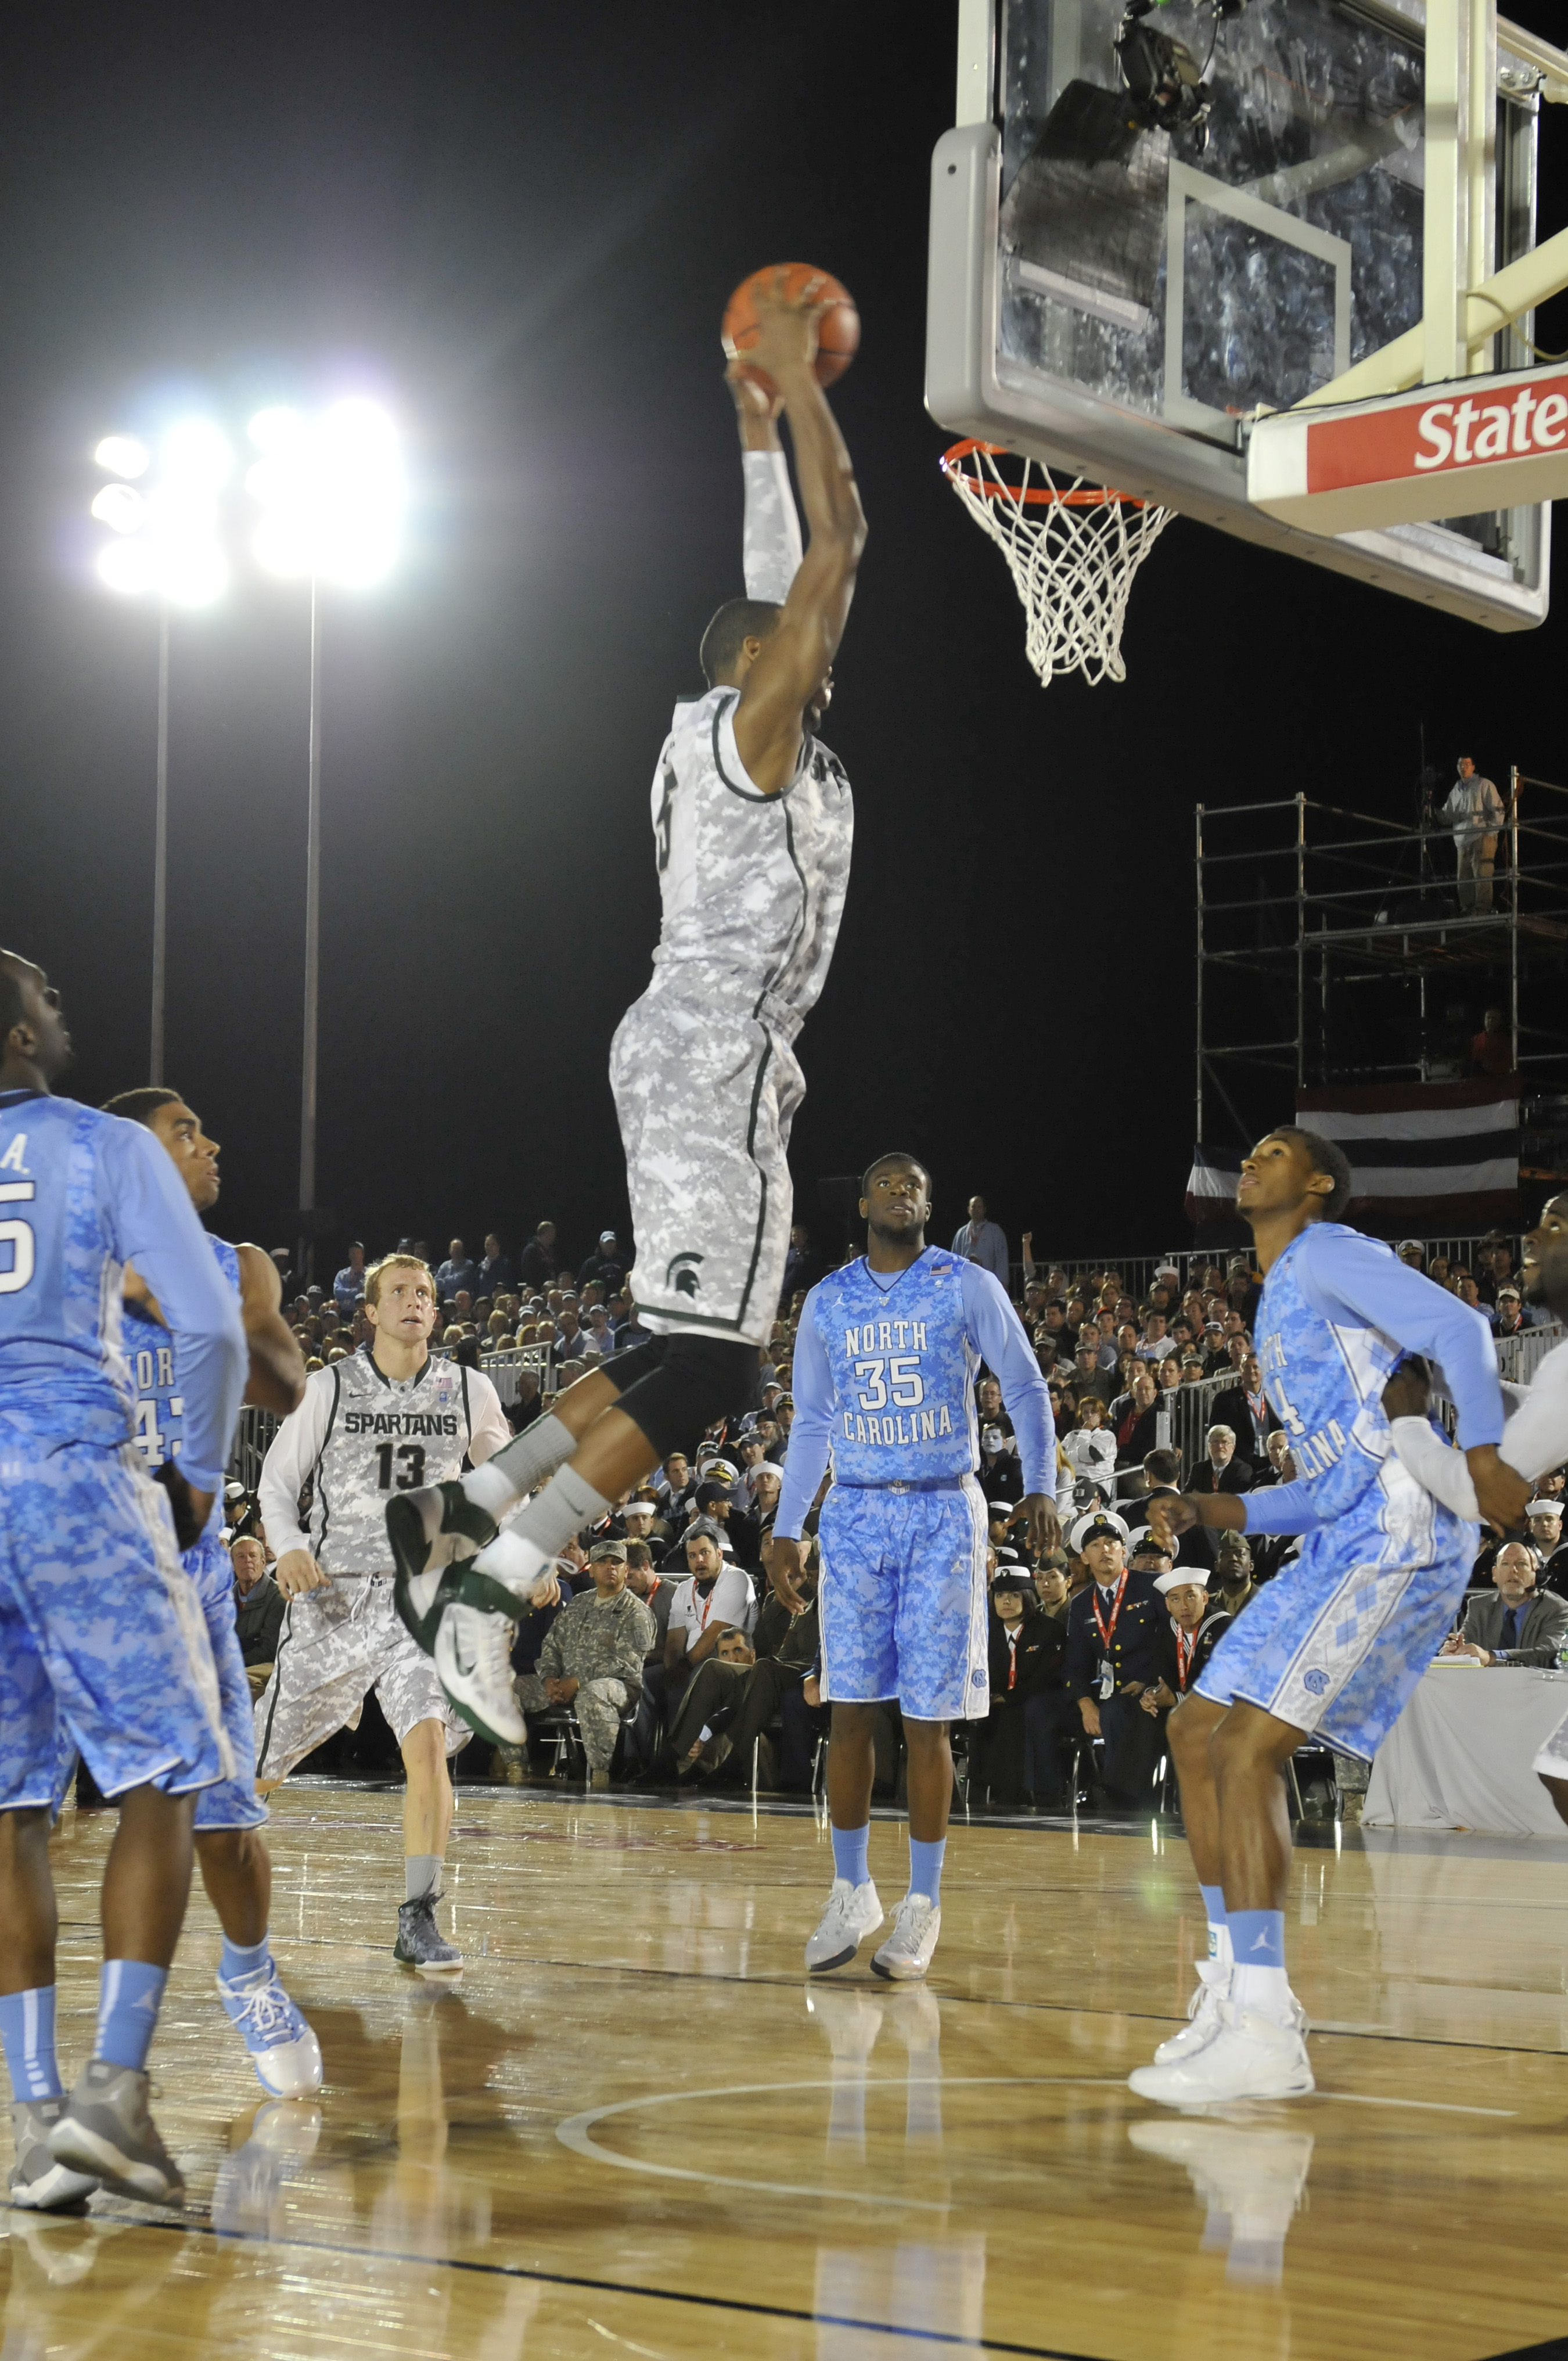 Payne dunking against North Carolina